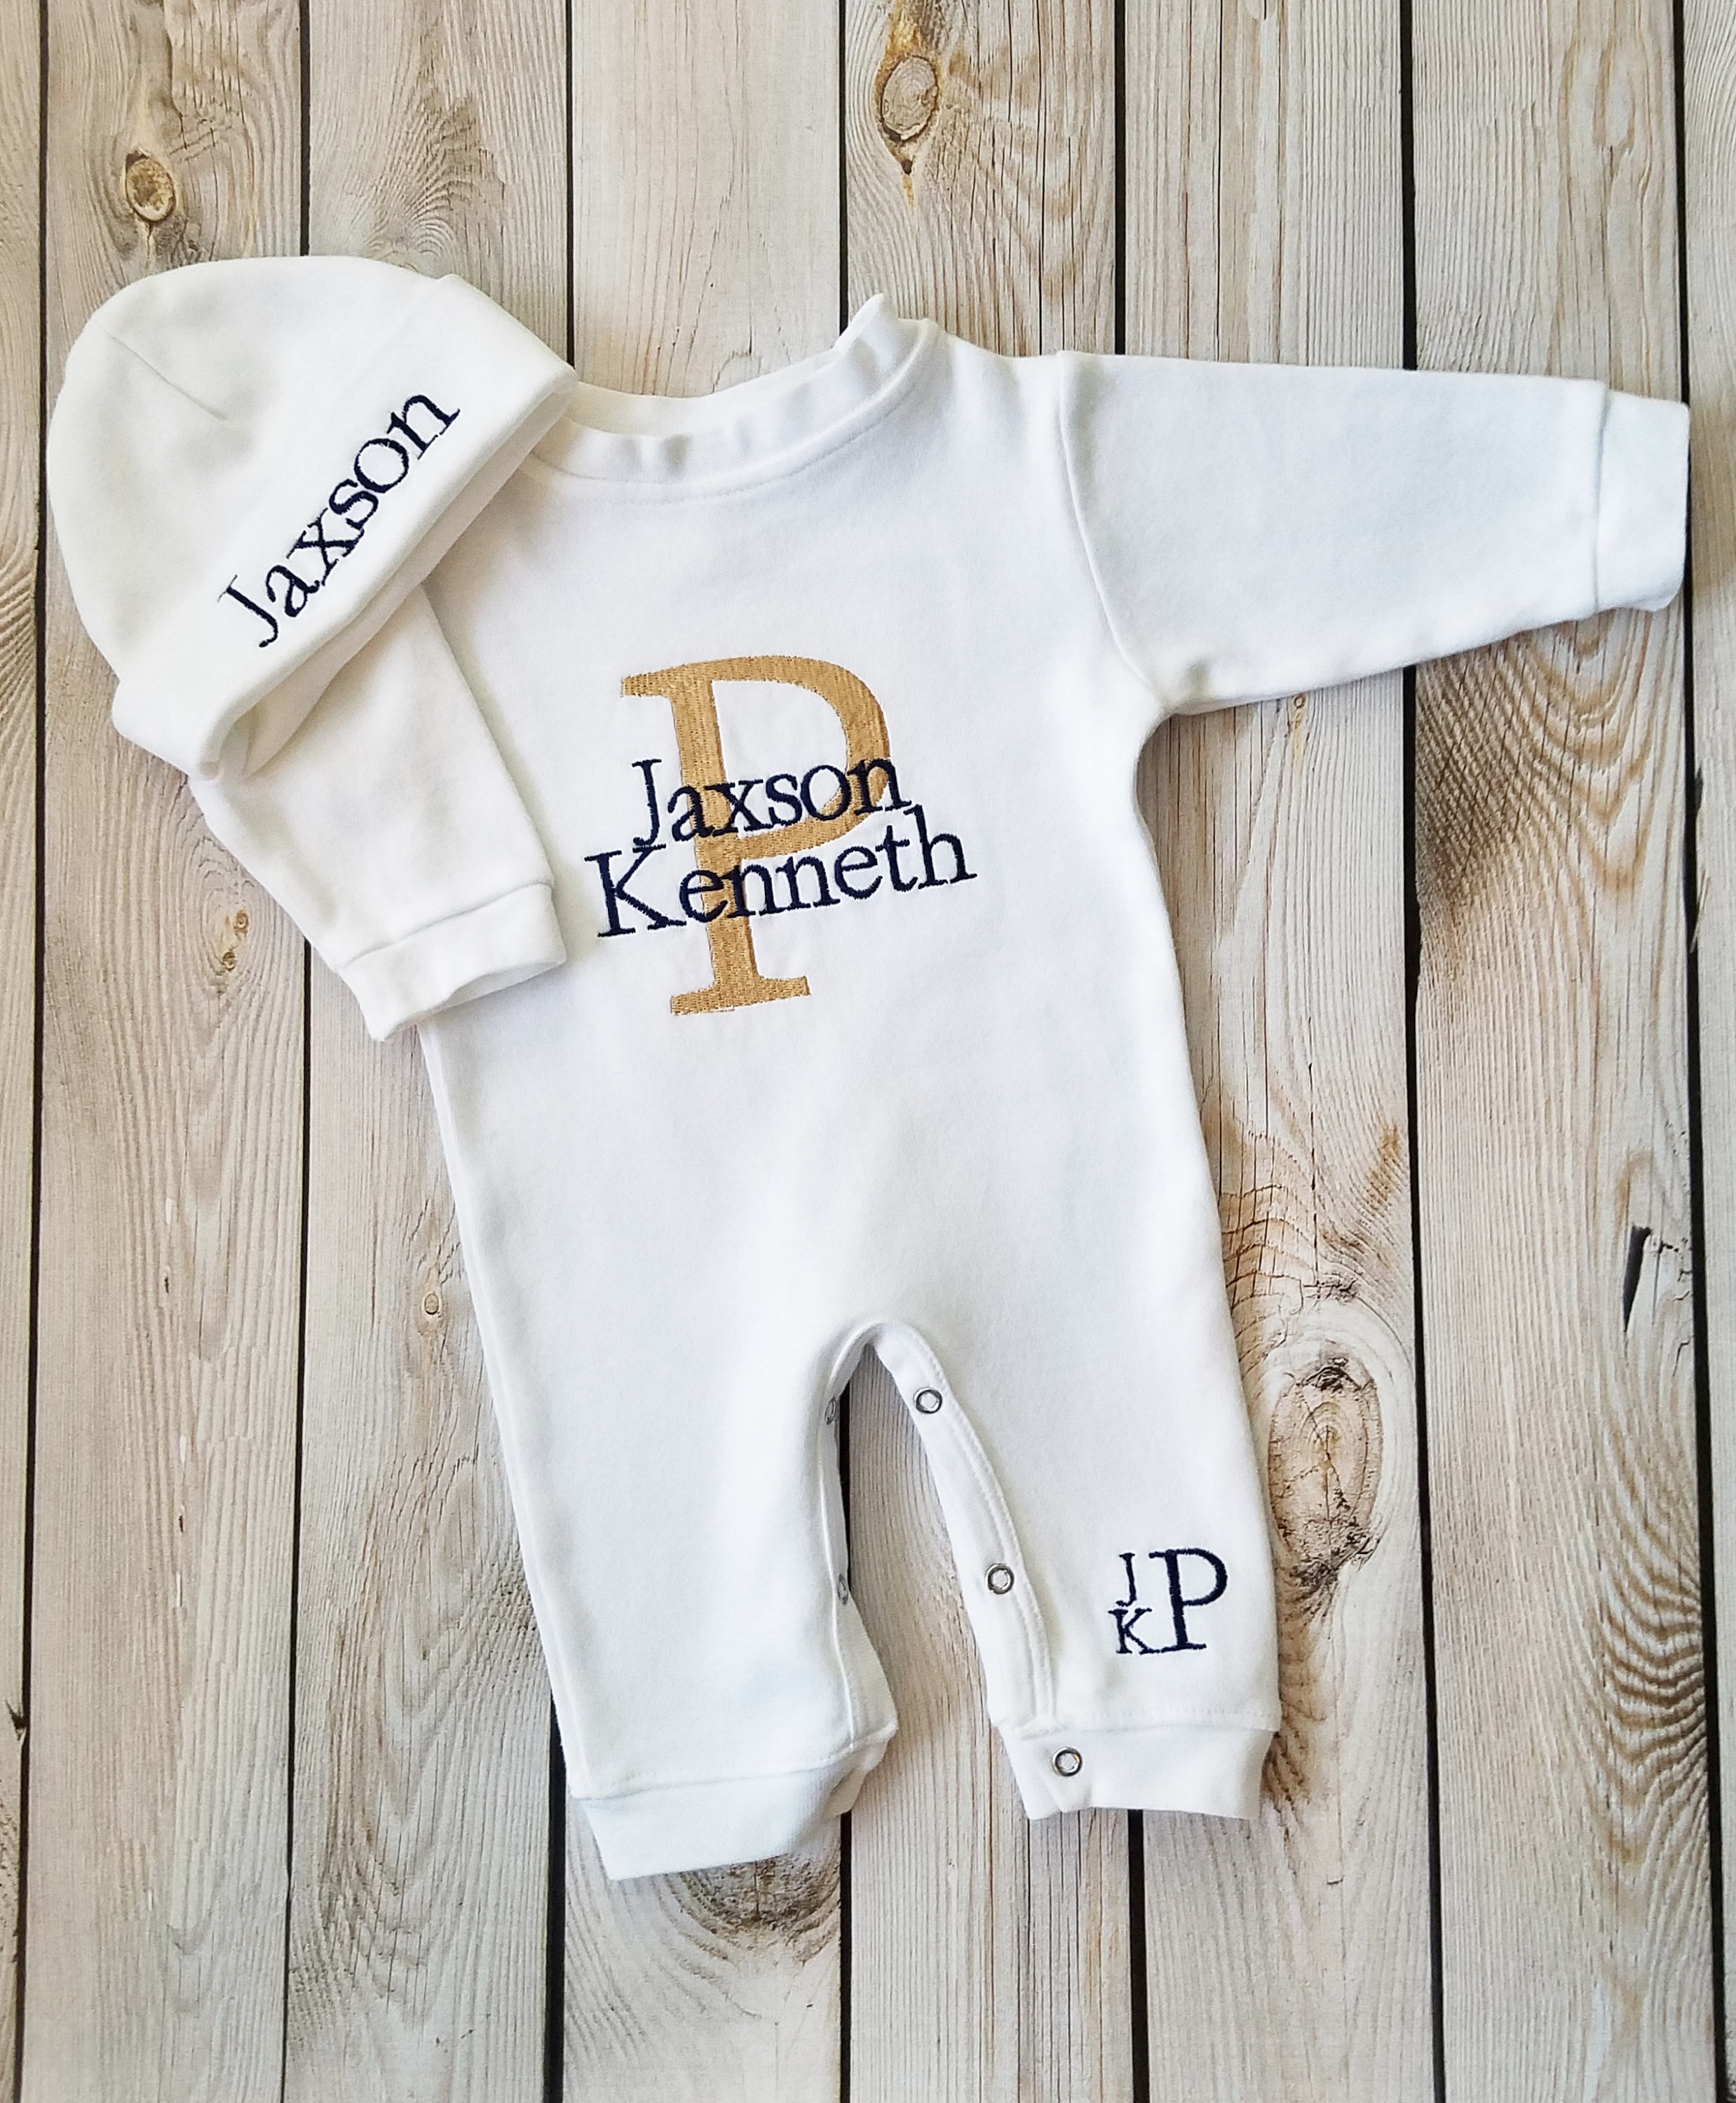 Tan And Navy Monogrammed Baby Boy Outfit Lollipop Kids